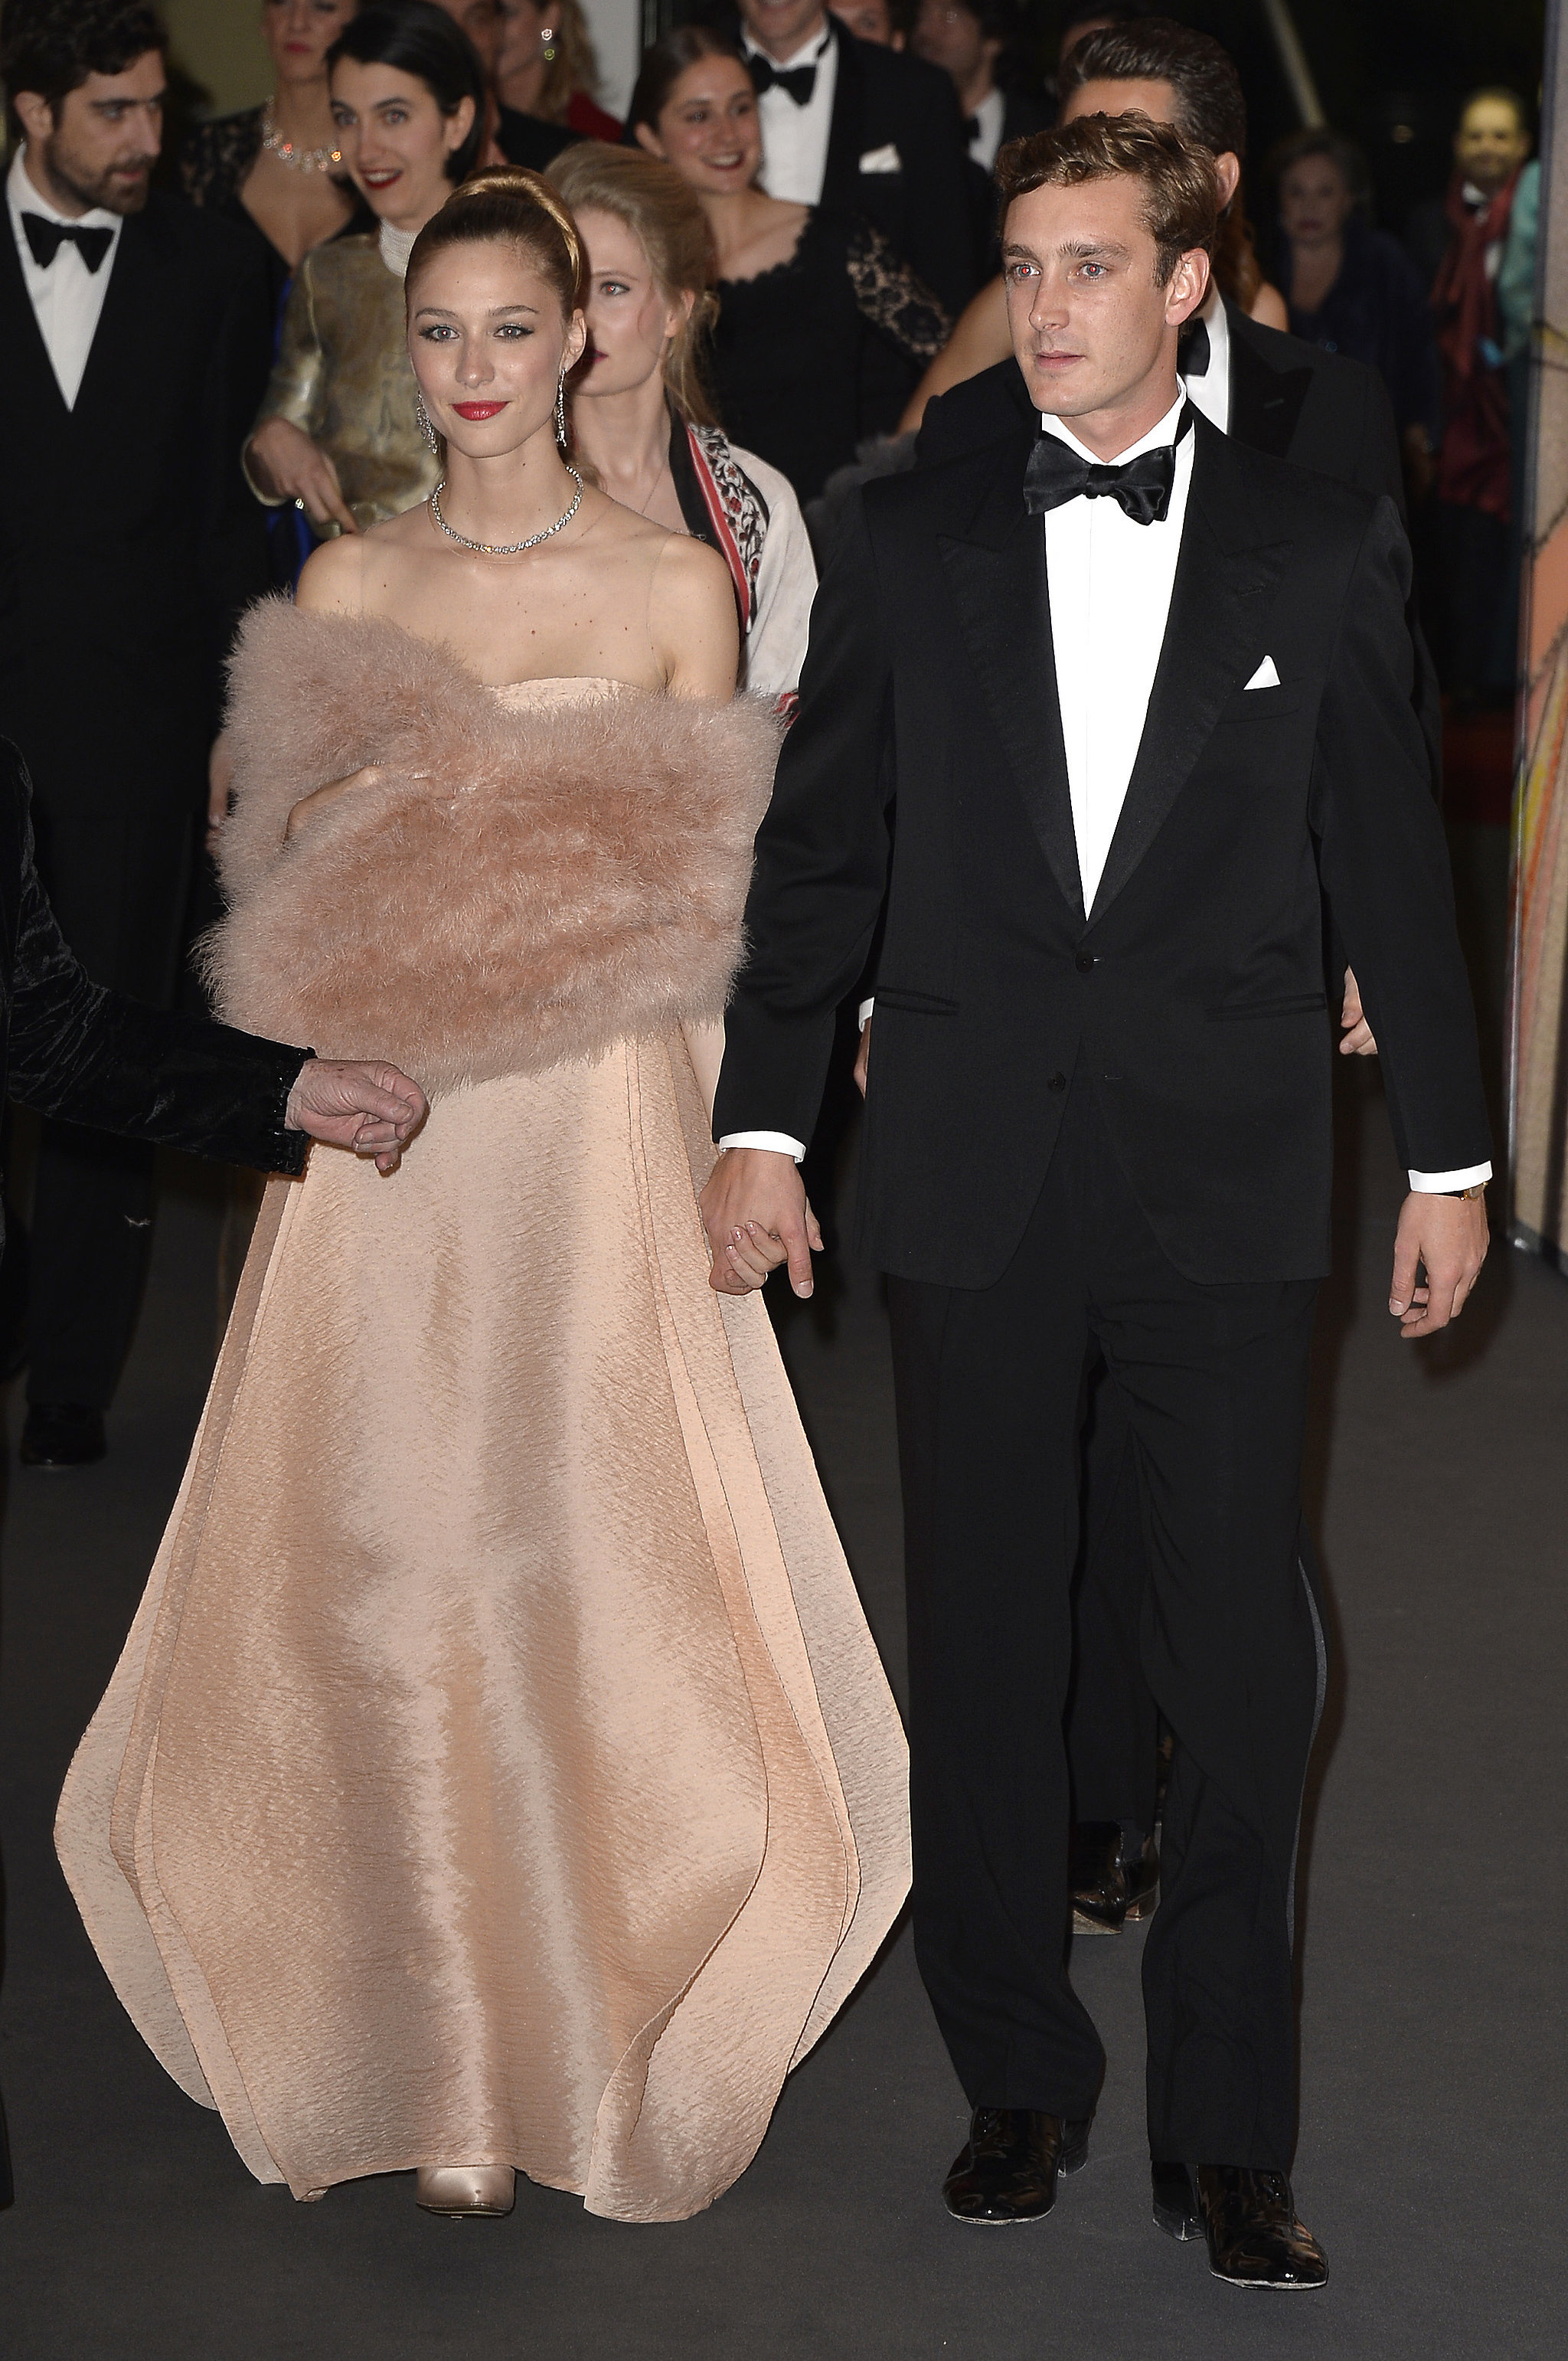 pierre and beatrice looked gorgeous arriving at the march